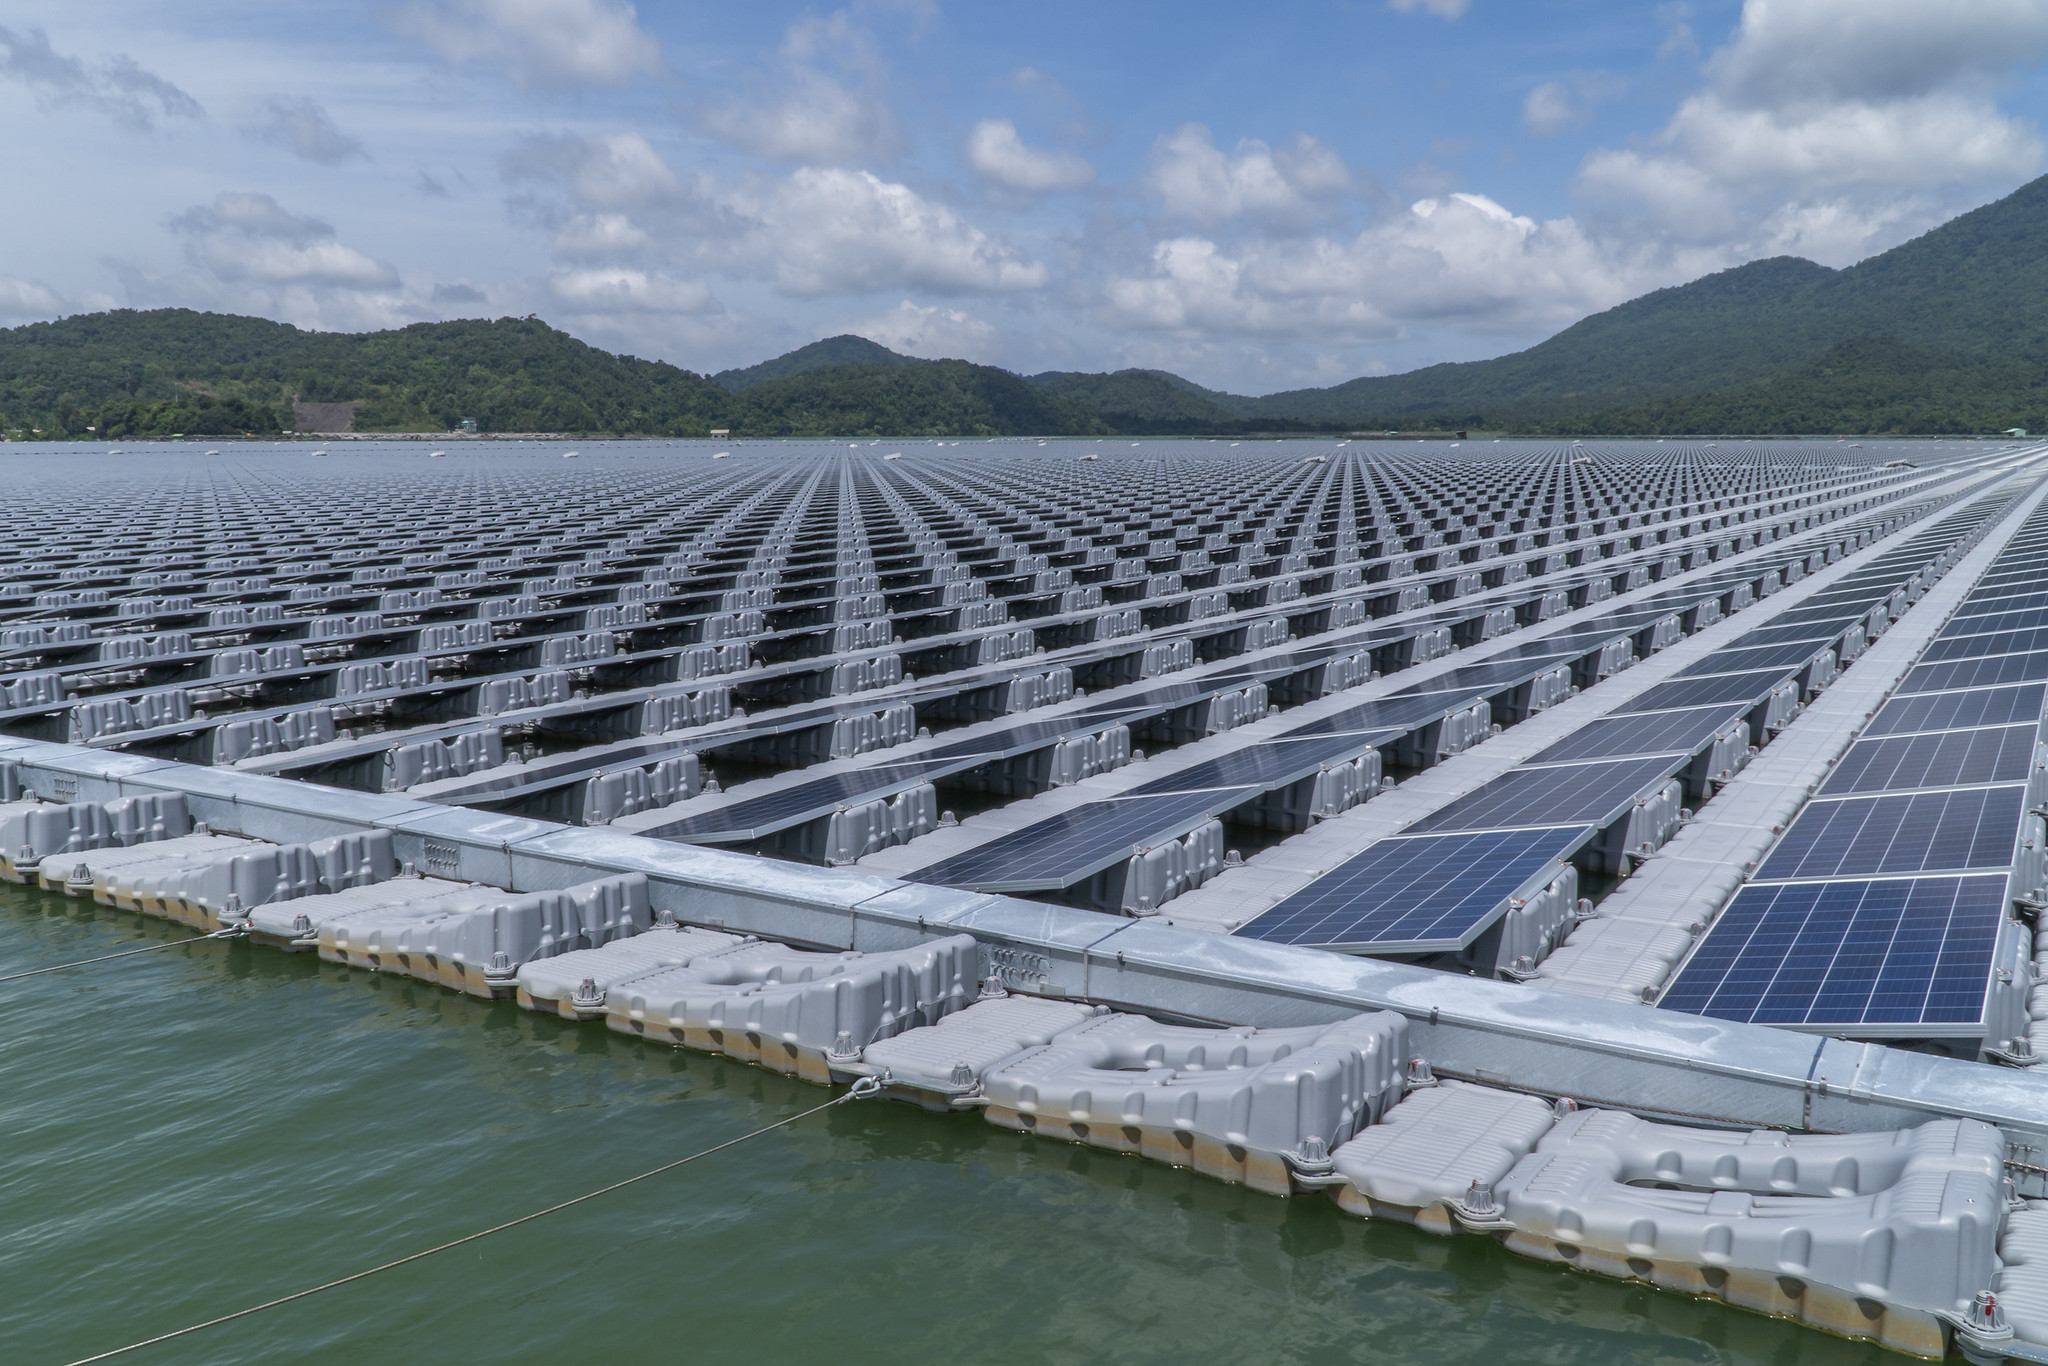 The floating solar photovoltaic (PV) power generation panels at the Da Mi hydro power plant in Binh Thuan, Viet Nam.